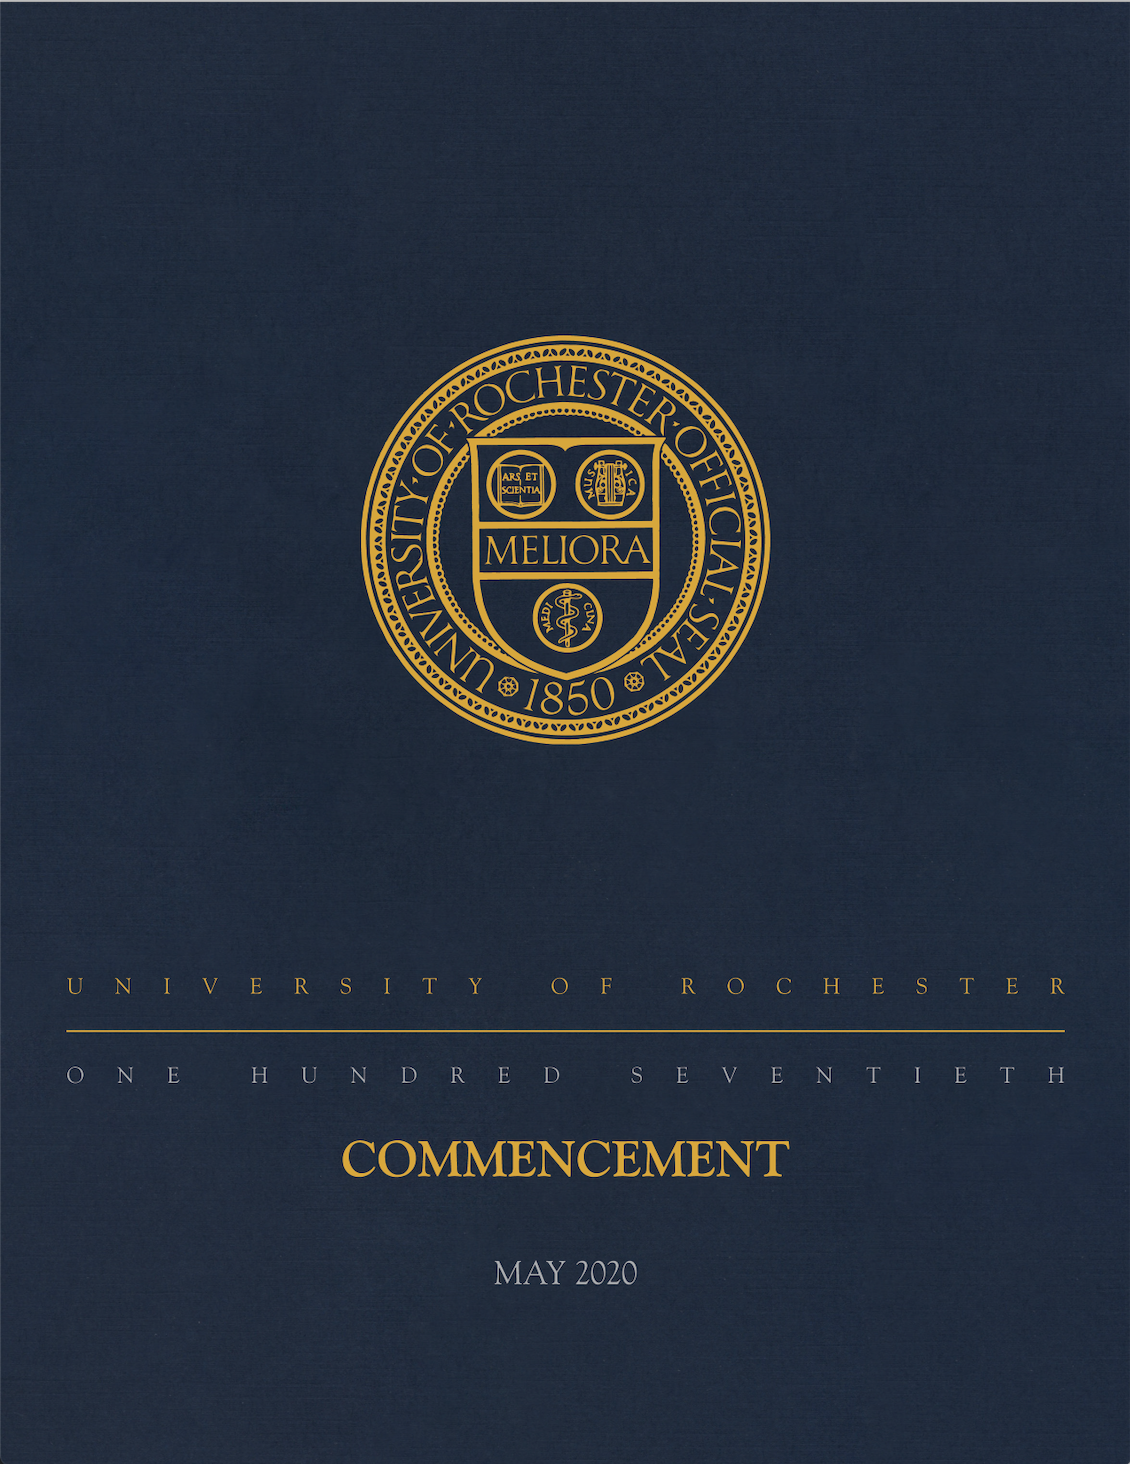 Download the 2020 Commencement Book